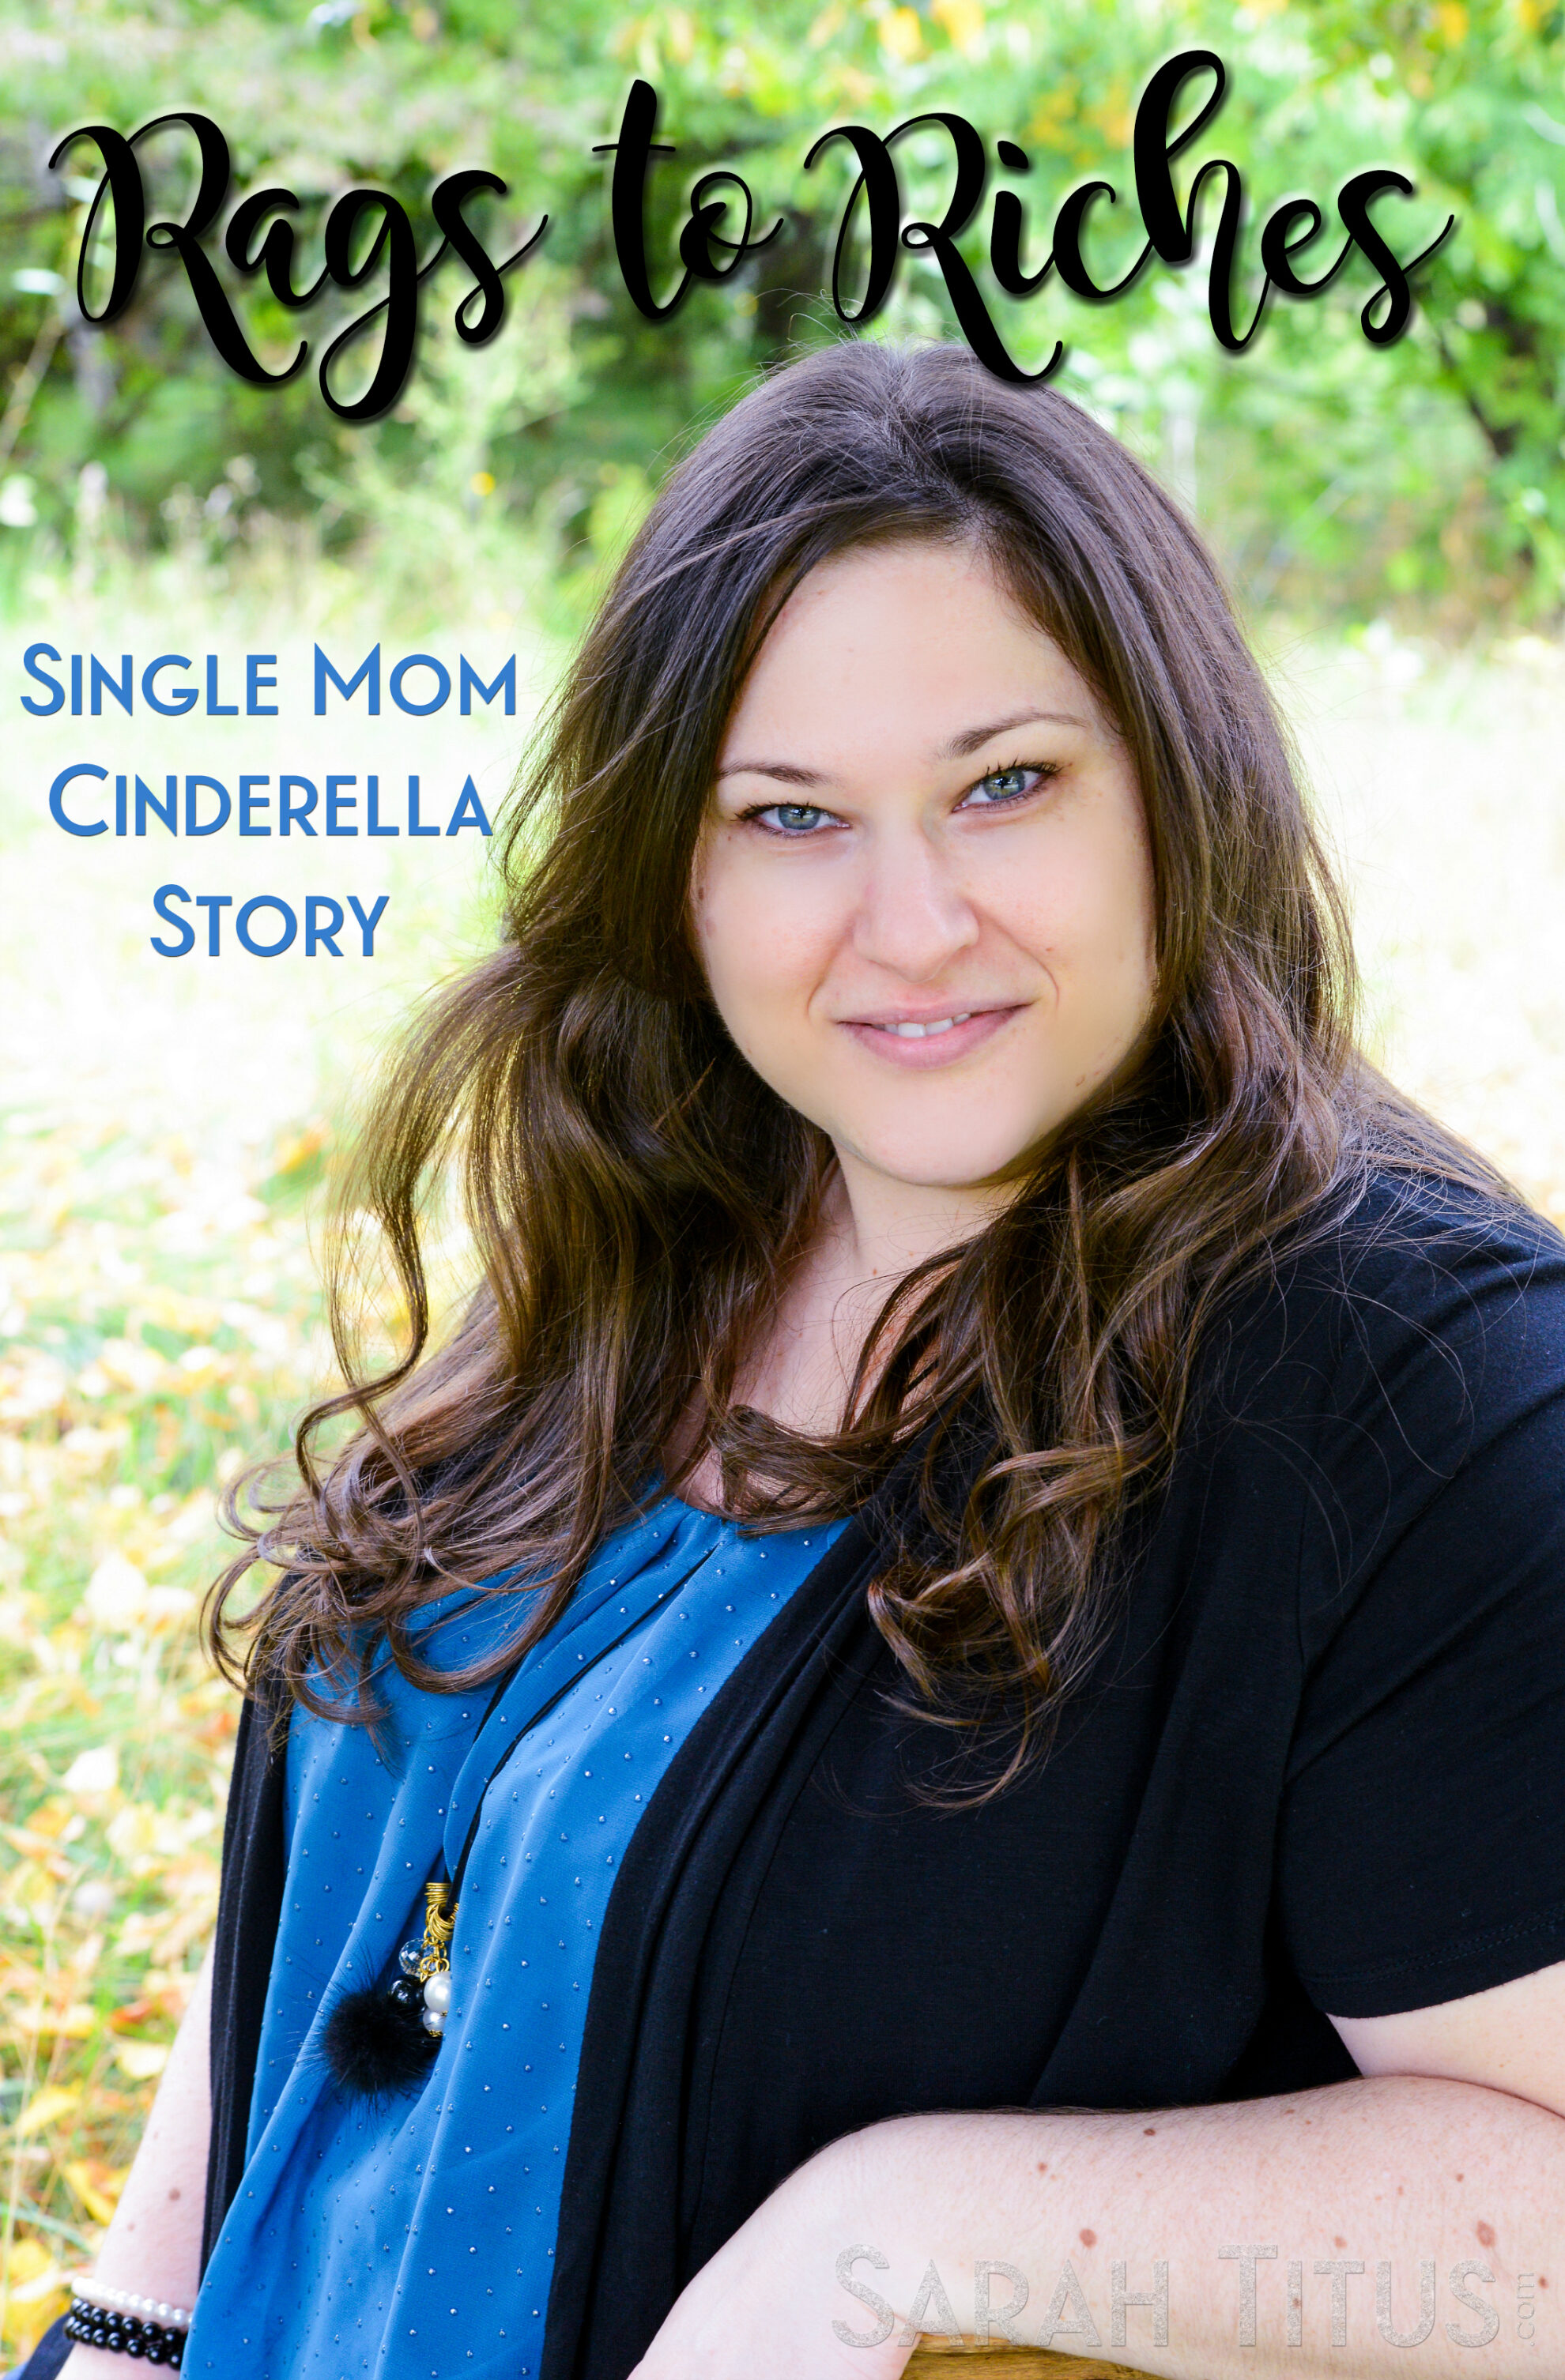 Rags to Riches: Single Mom Cinderella Story